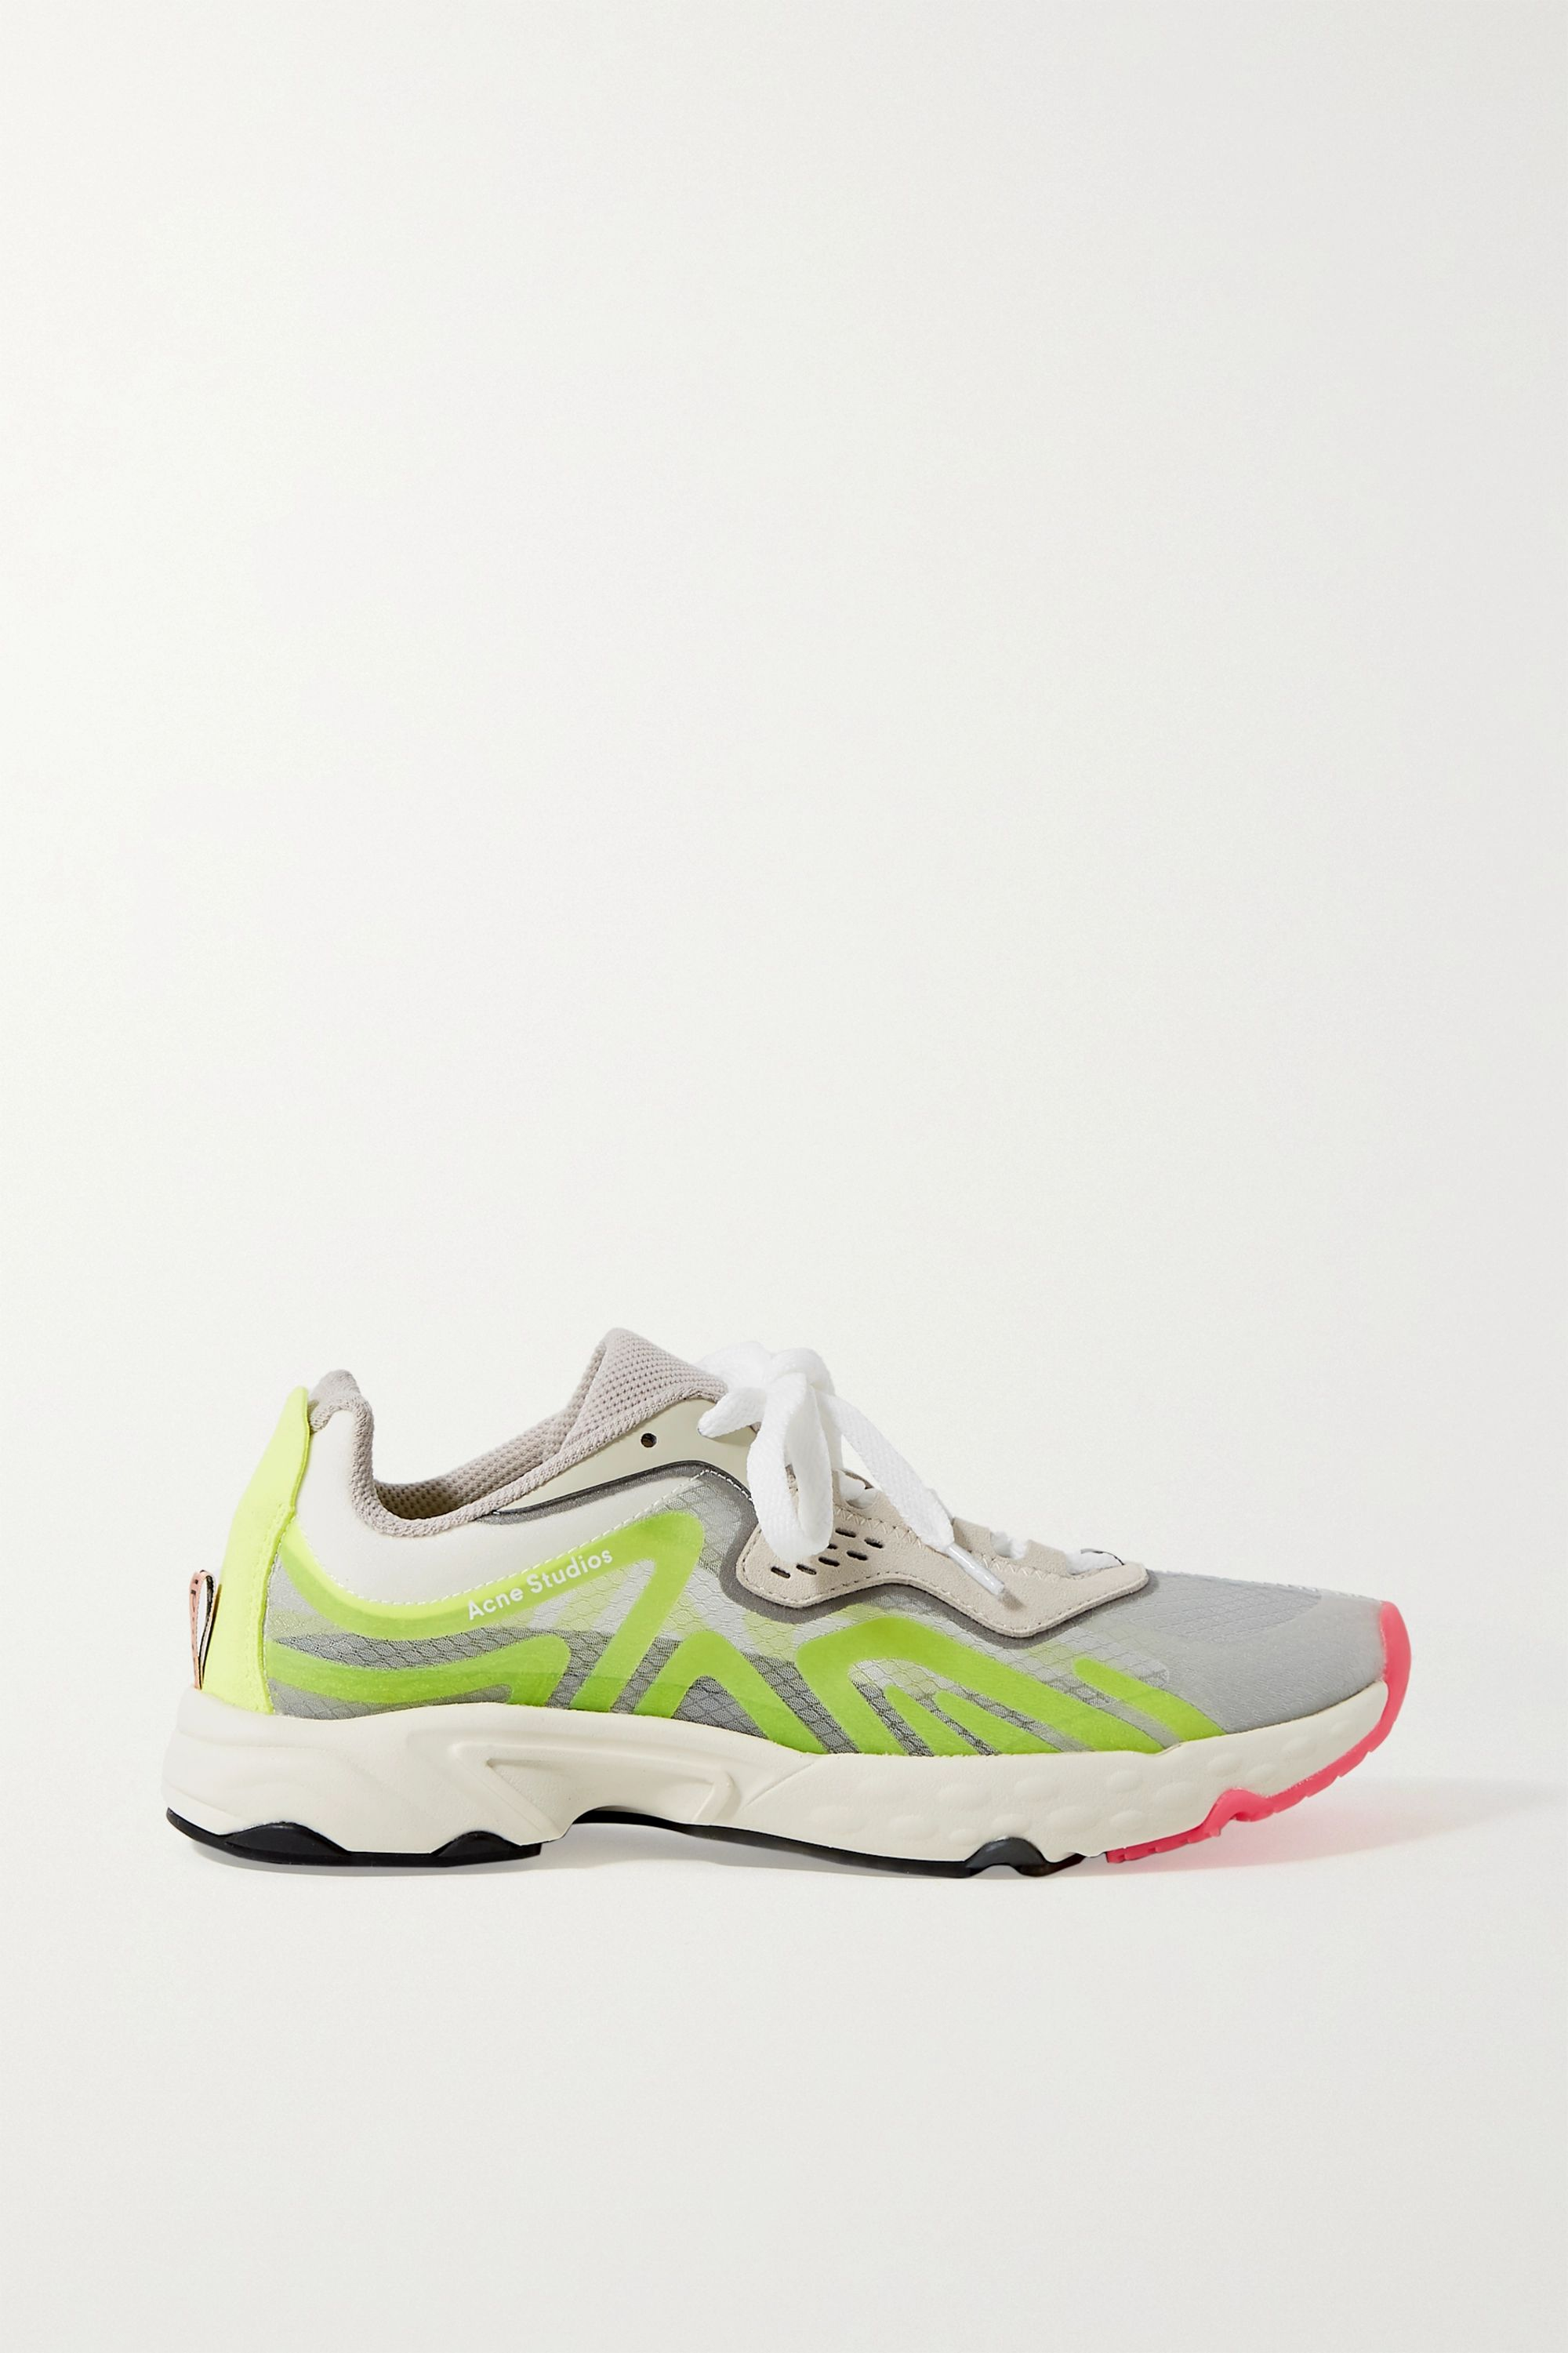 Acne Studios Ripstop, rubber and suede sneakers